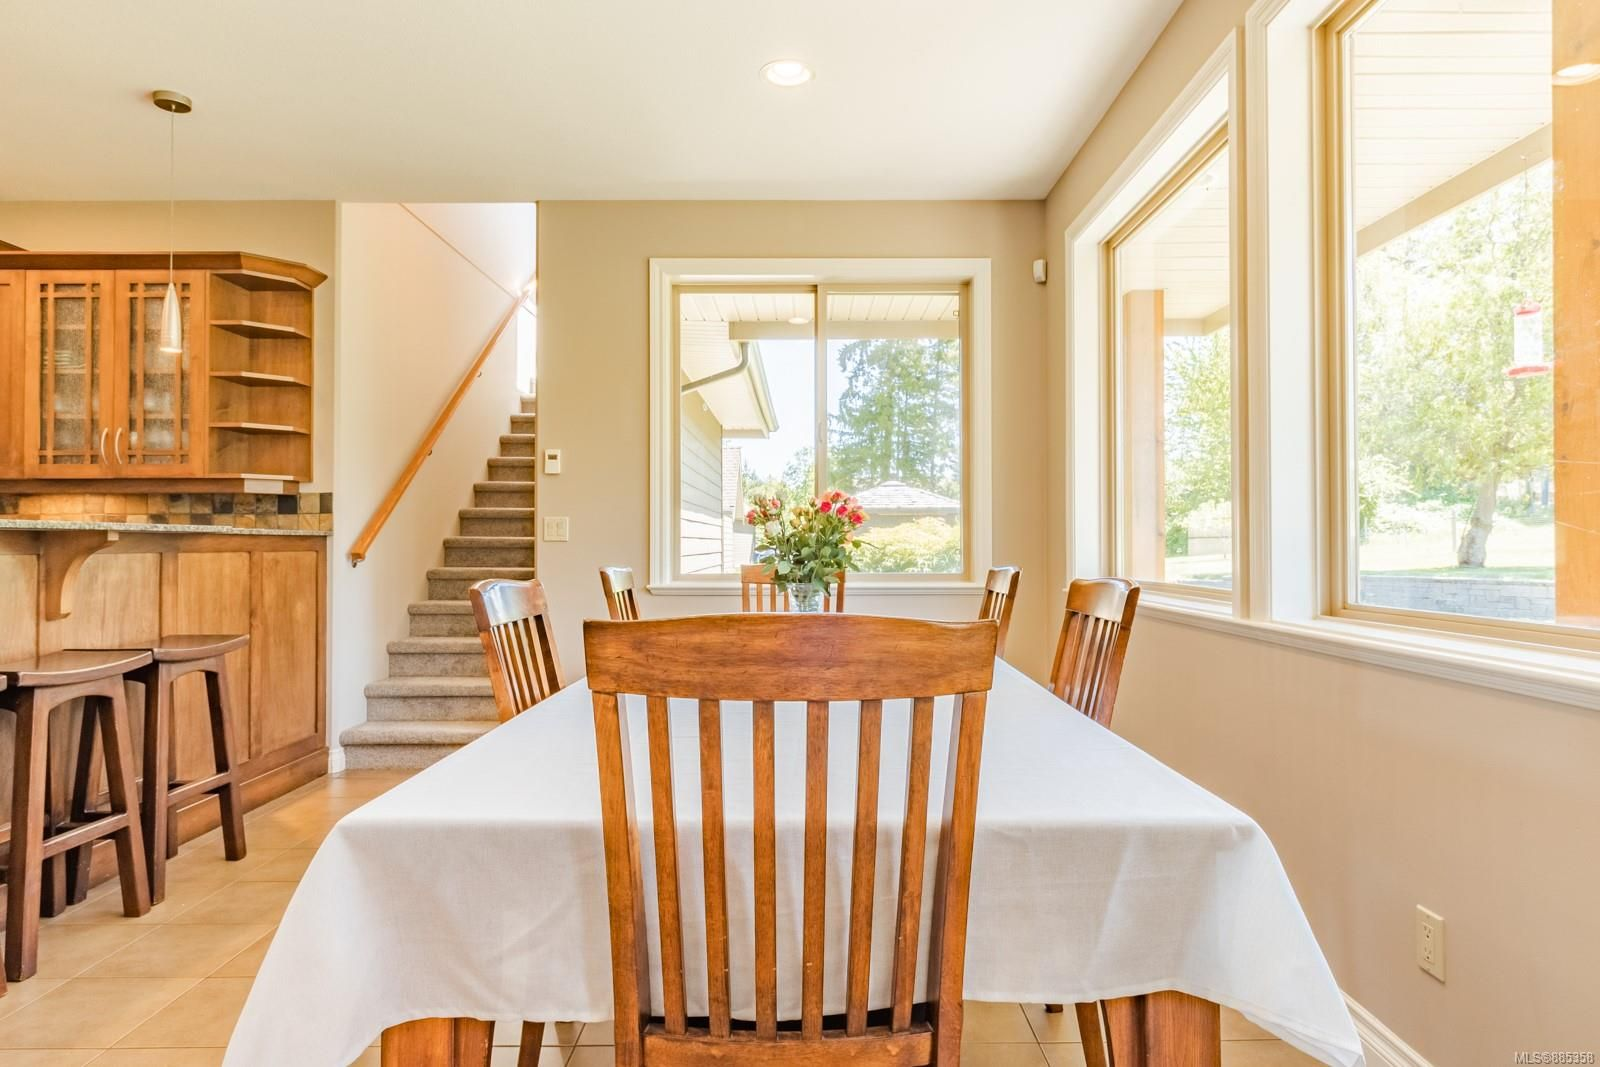 Photo 8: Photos: 2850 Peters Rd in : PQ Qualicum Beach House for sale (Parksville/Qualicum)  : MLS®# 885358